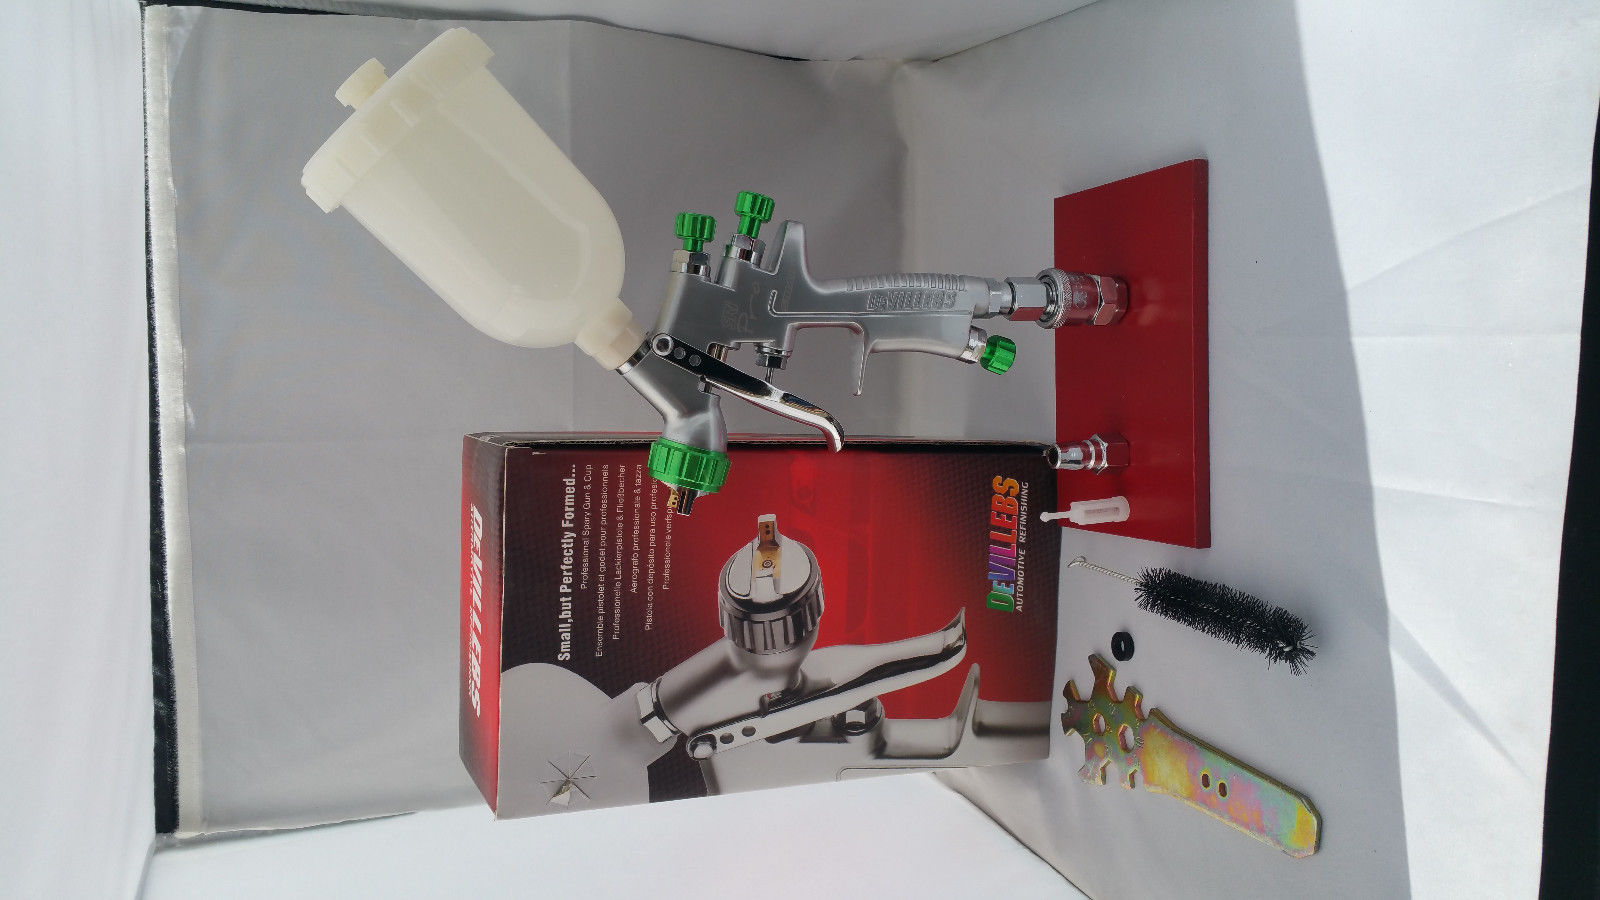 Free shipping DEVILLEBS MINI Spray Gun SRi Professional 1 2mm Gravity Feed HVLP Paint Sprayer with